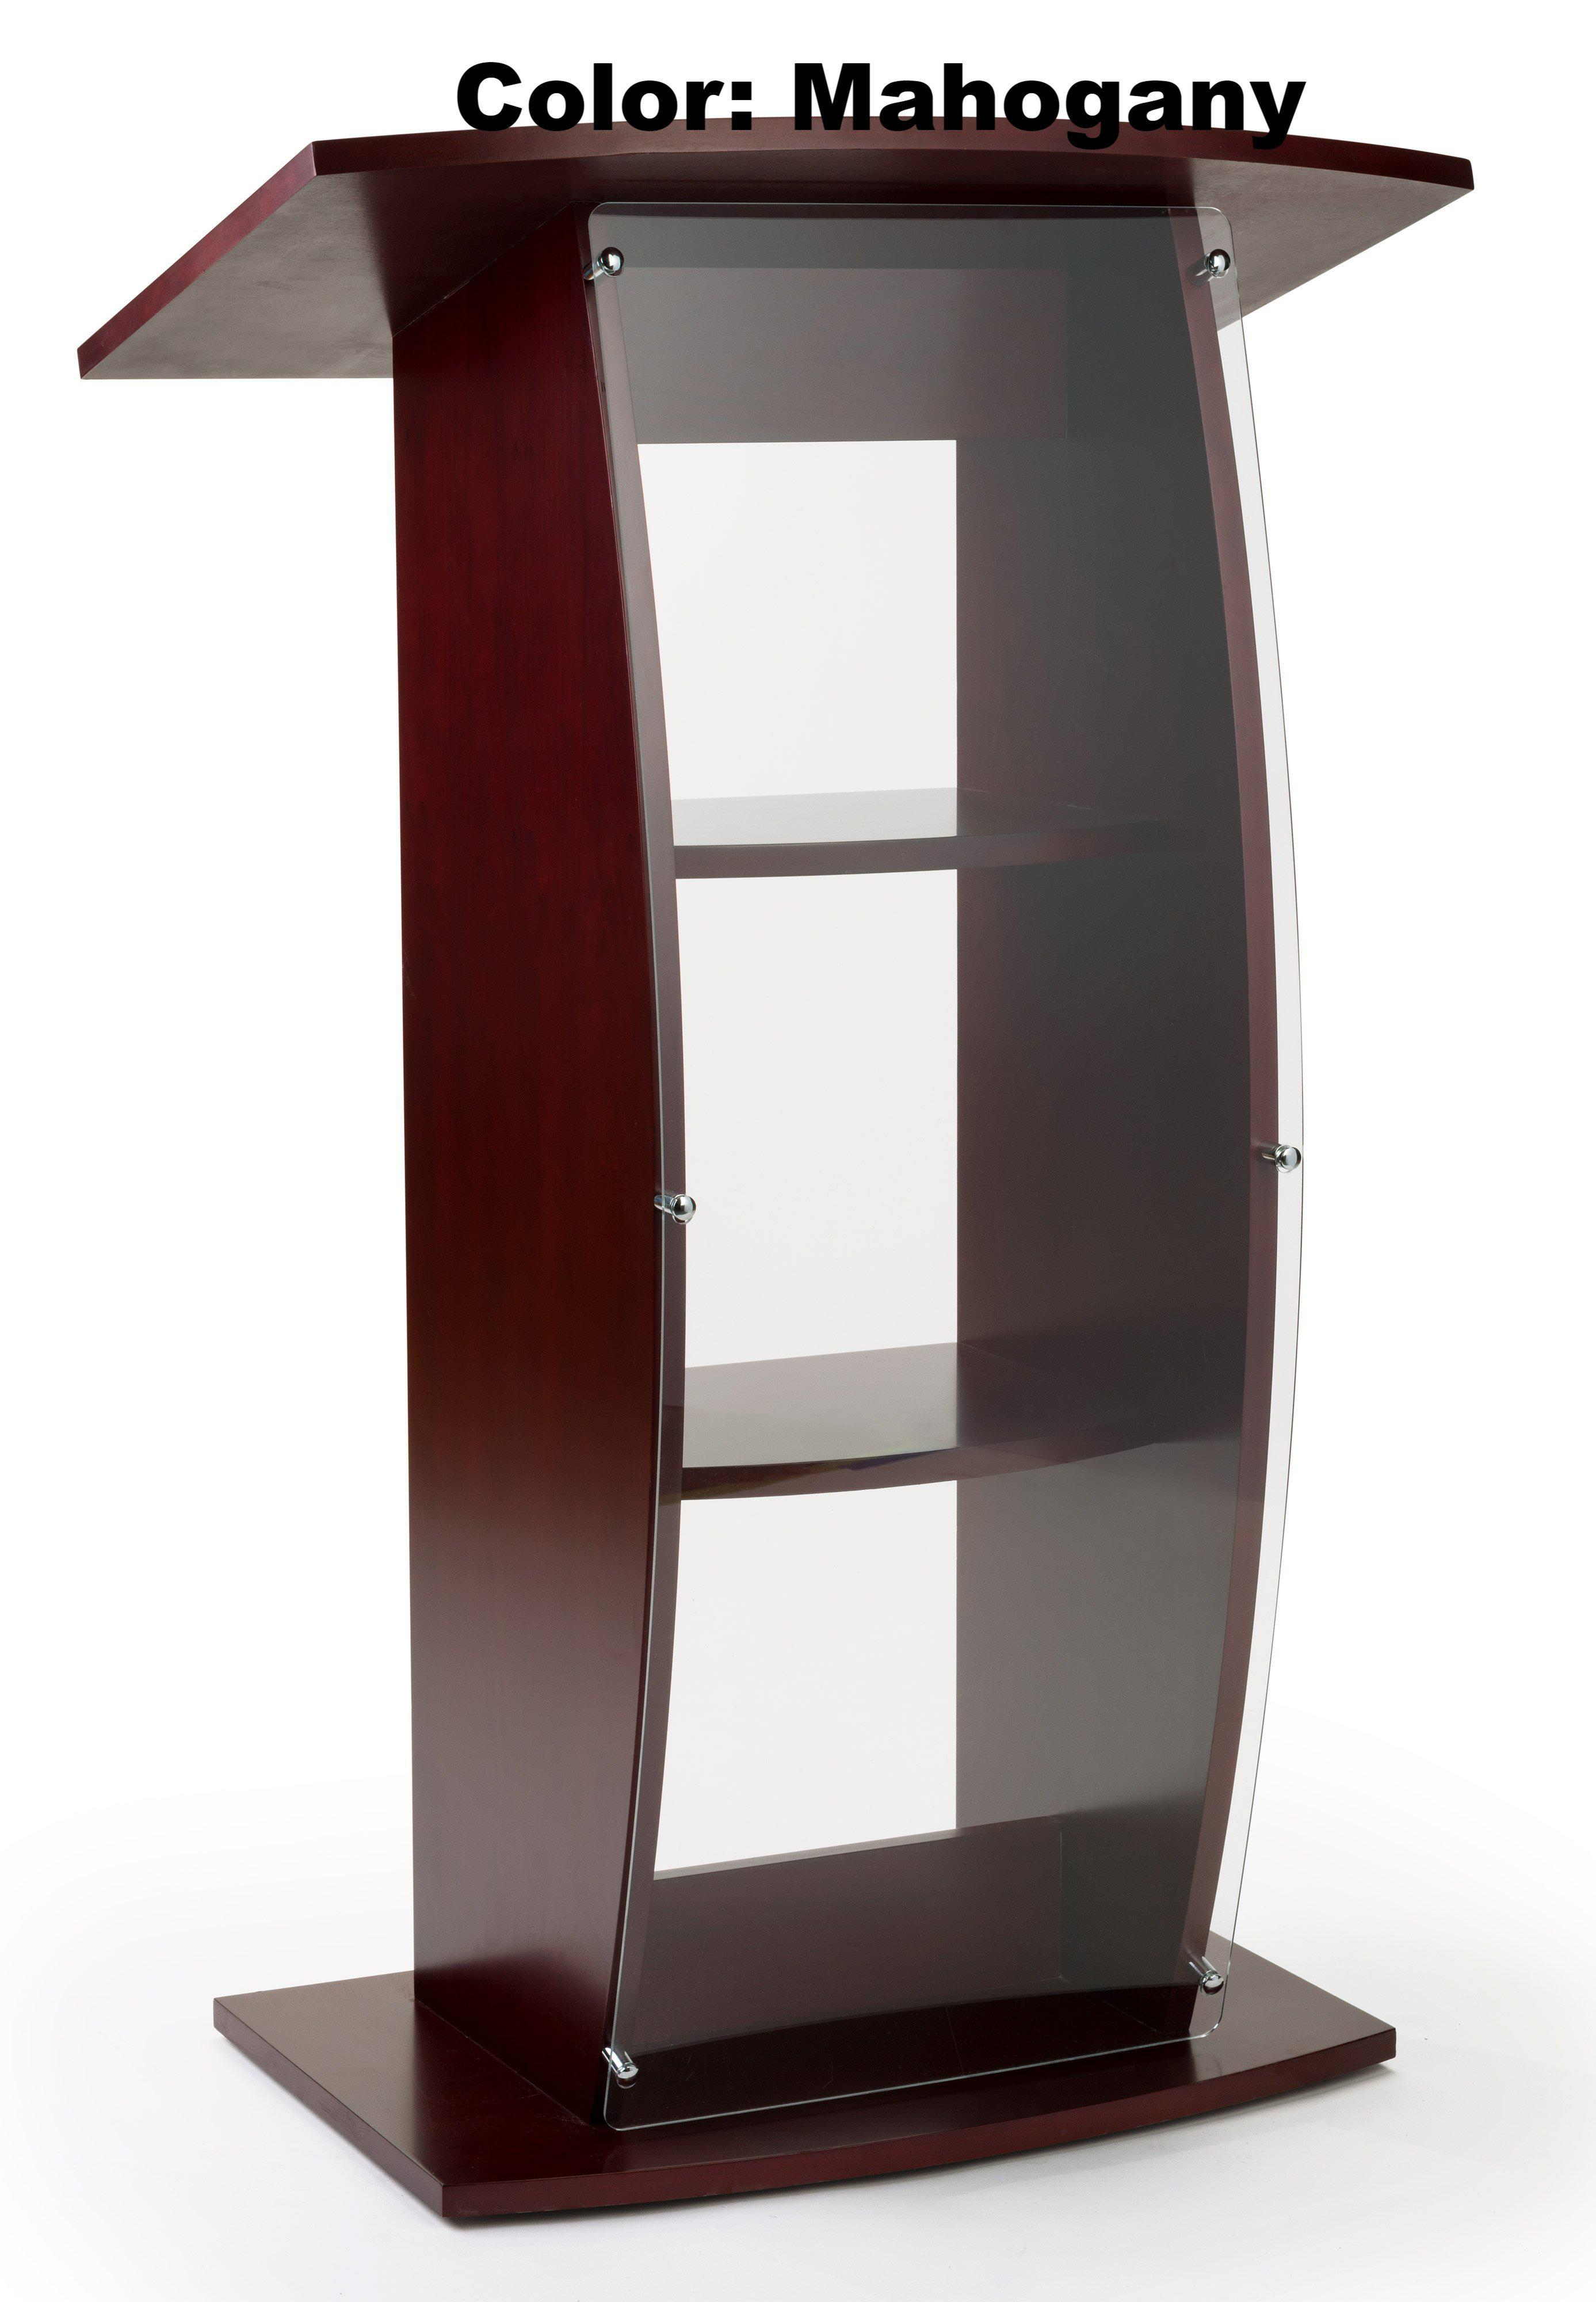 Wood with Acrylic Pulpit Curved Sides, Clear Front Panel